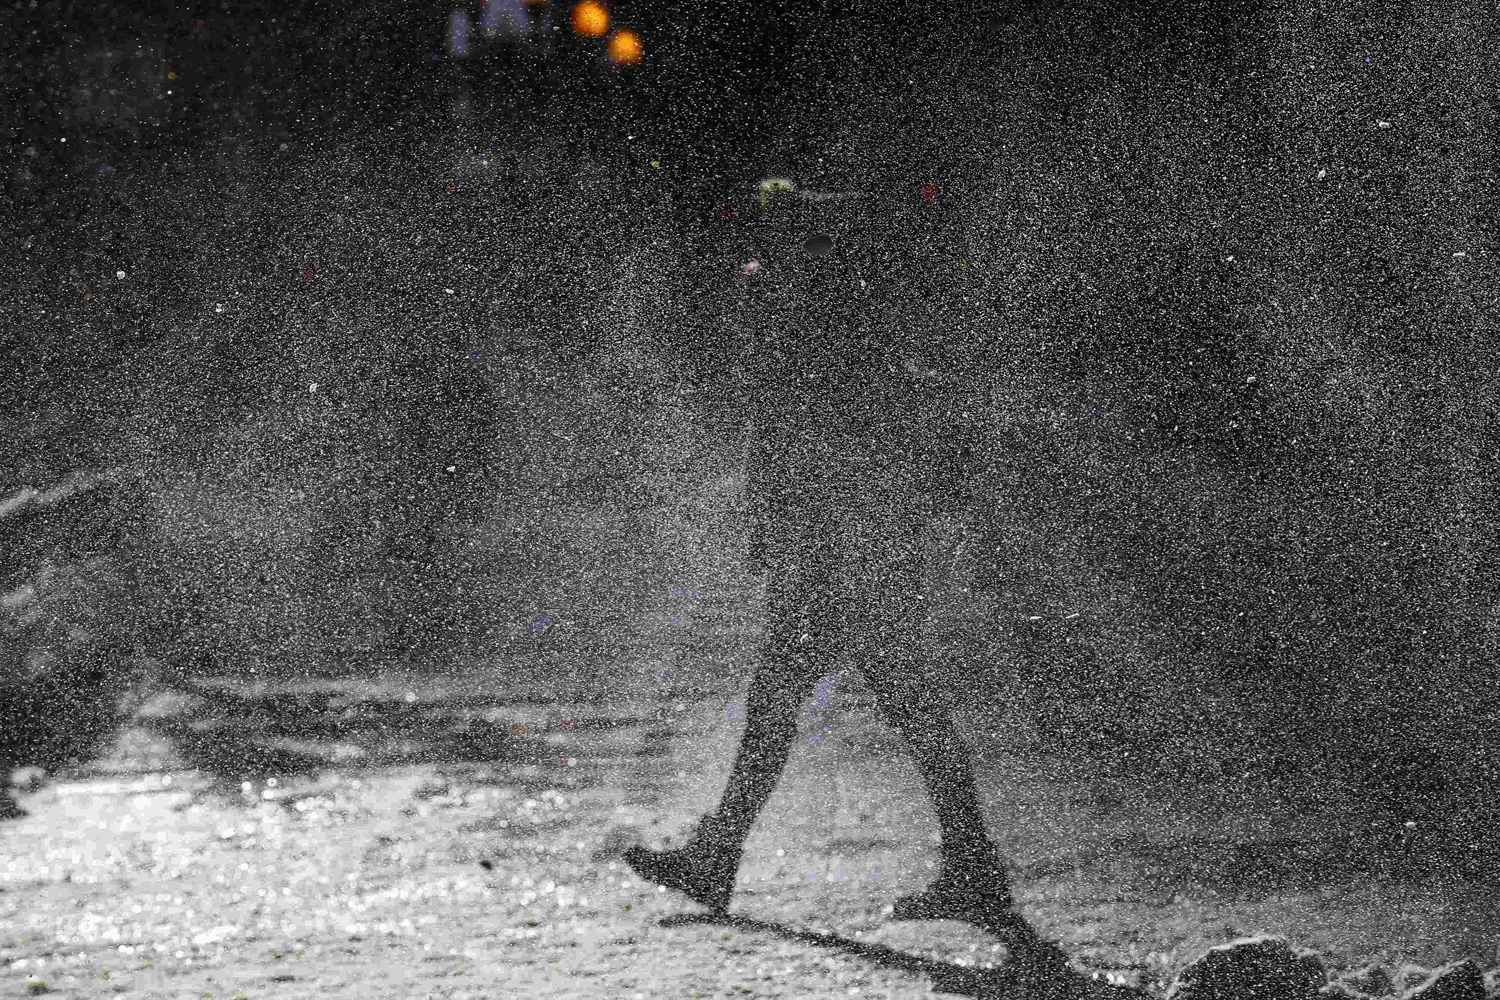 Jan. 6, 2014. A woman walks through a gust of blowing snow in frigid cold temperatures though downtown Chicago.